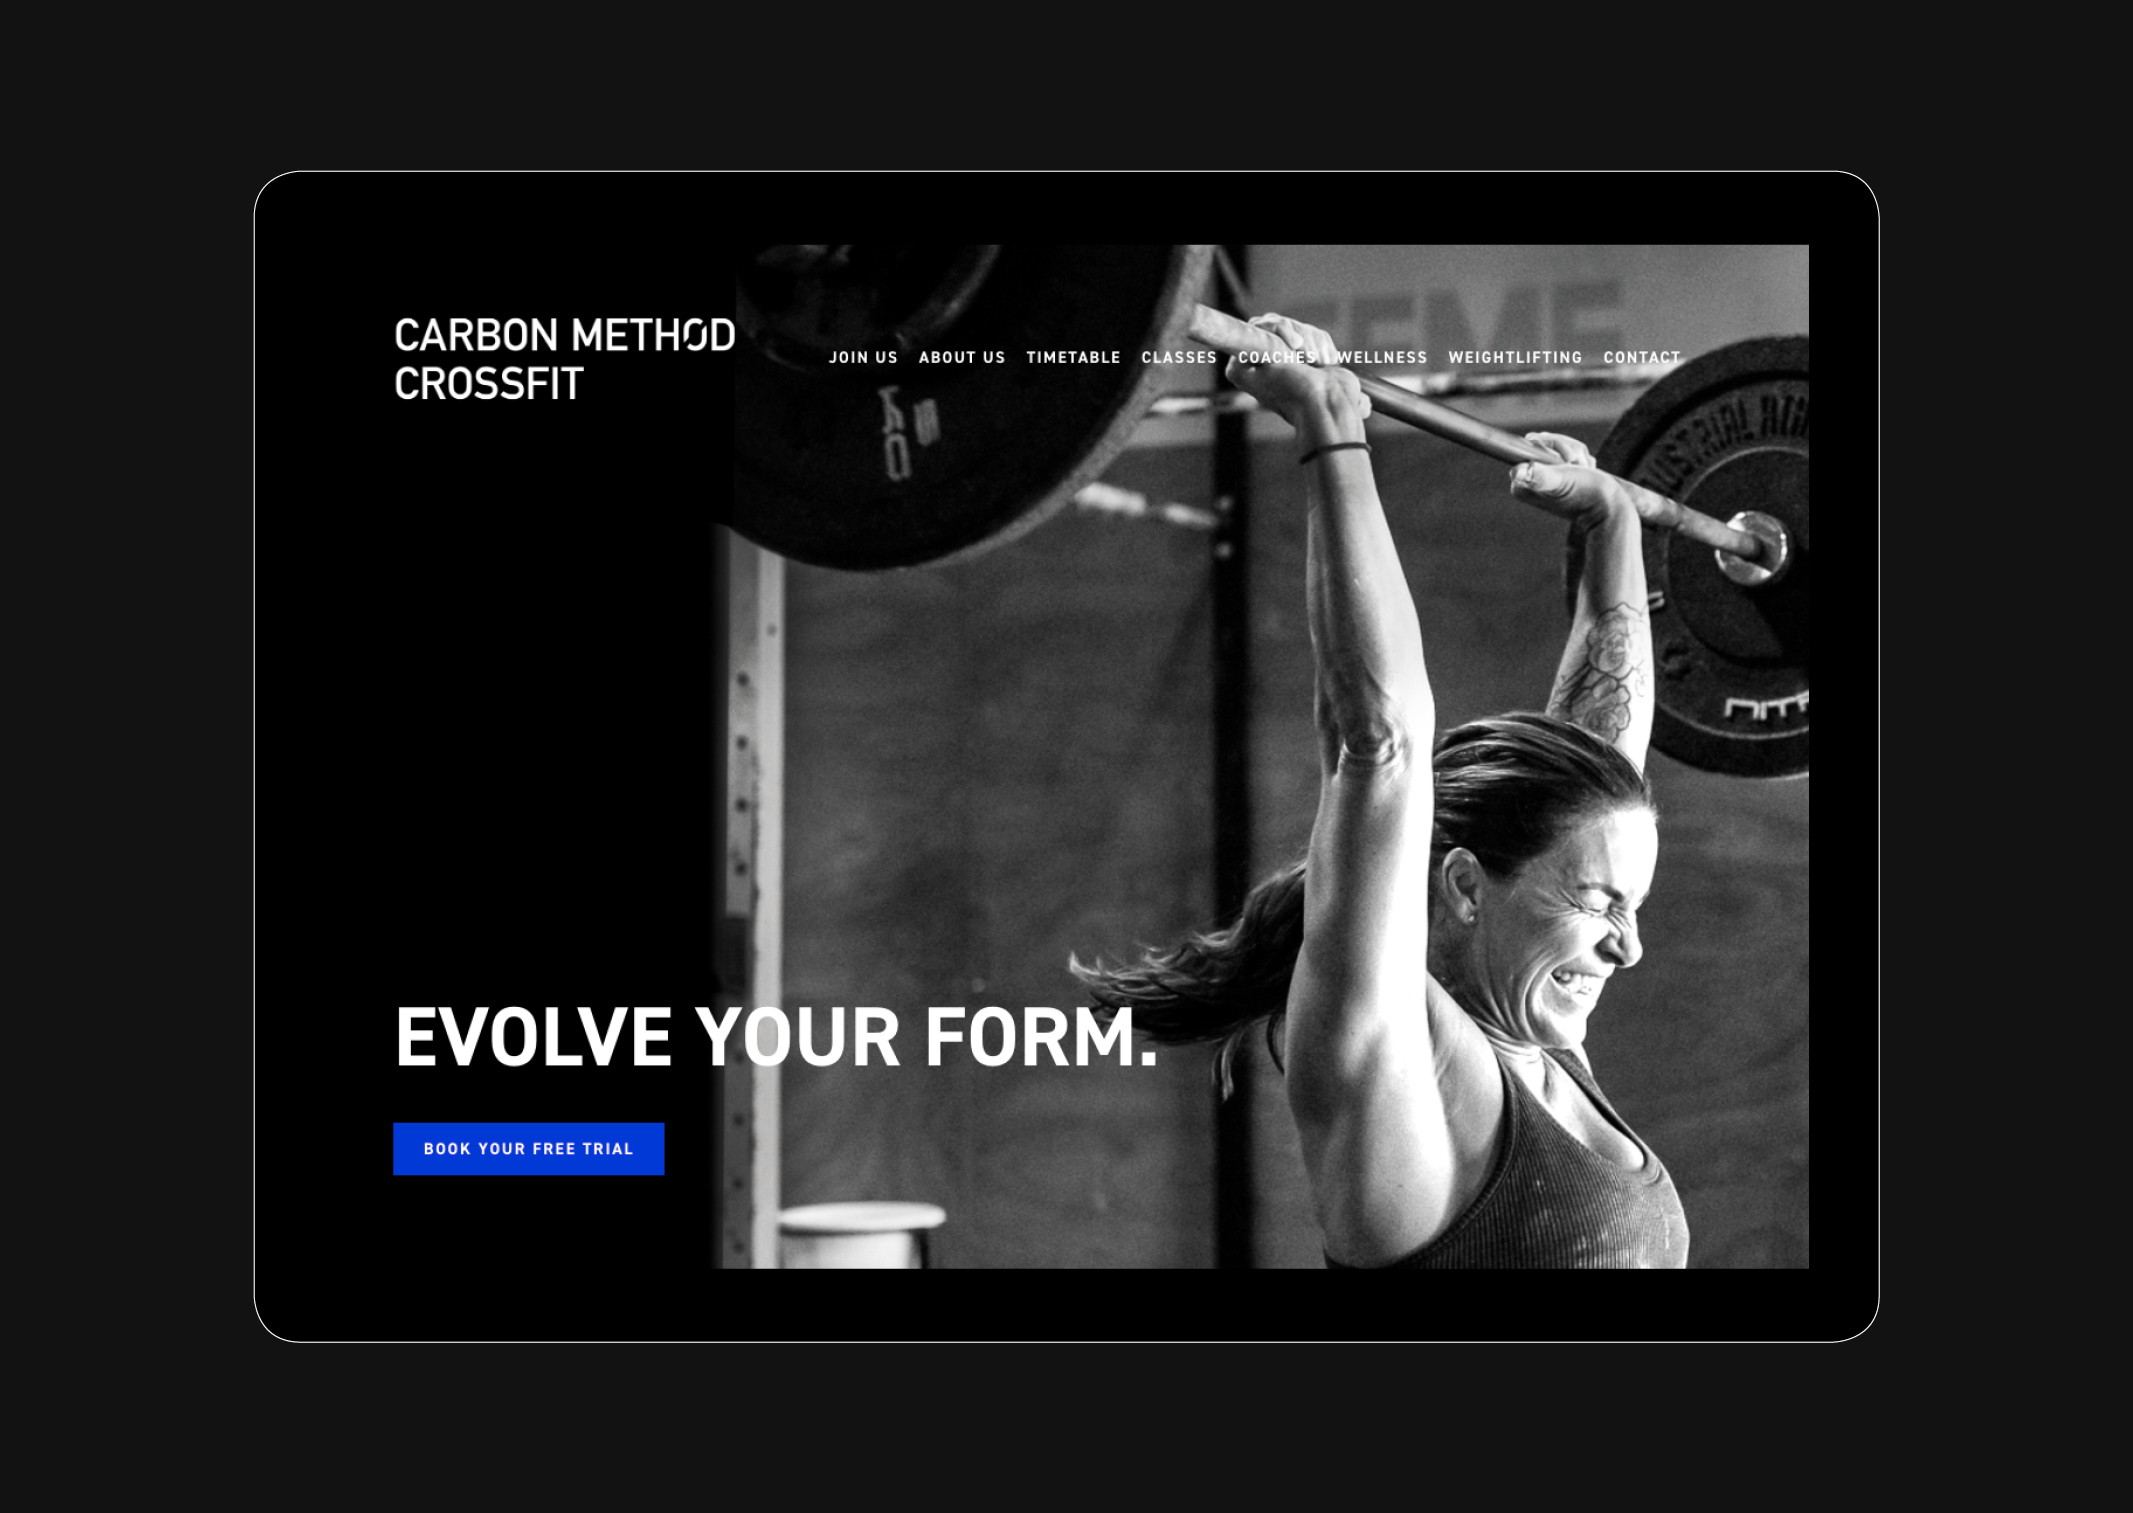 Carbon Method CrossFit Website Homepage Branding Identity Weight lifting